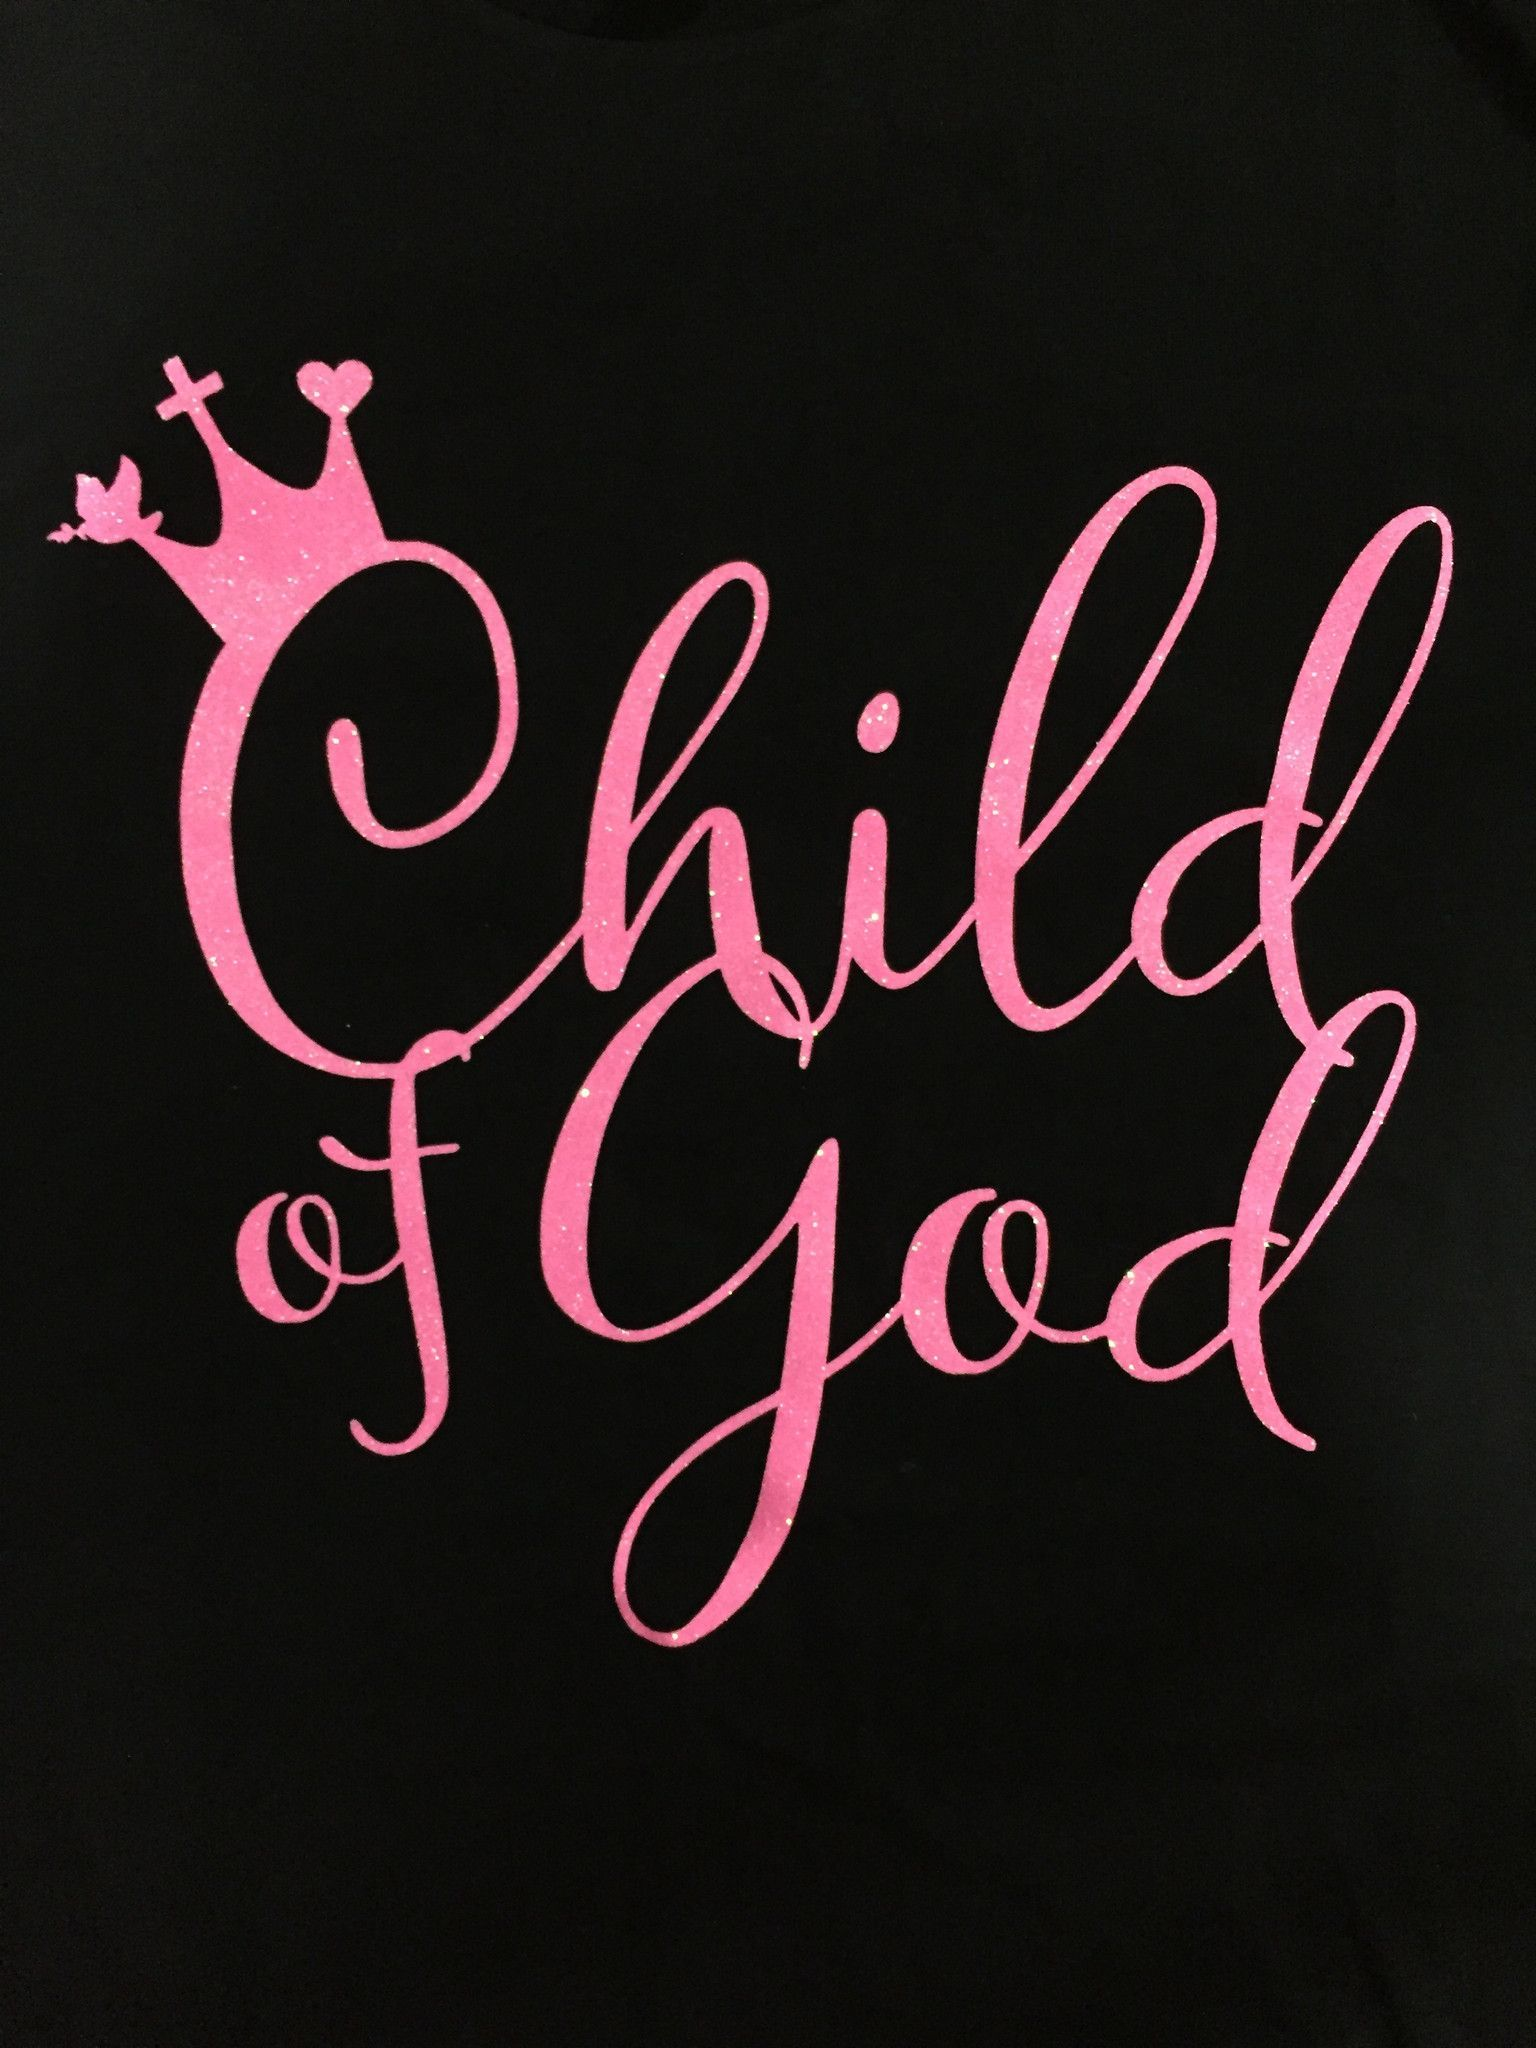 Child of God (With images) | Quotes about god, Christian ...